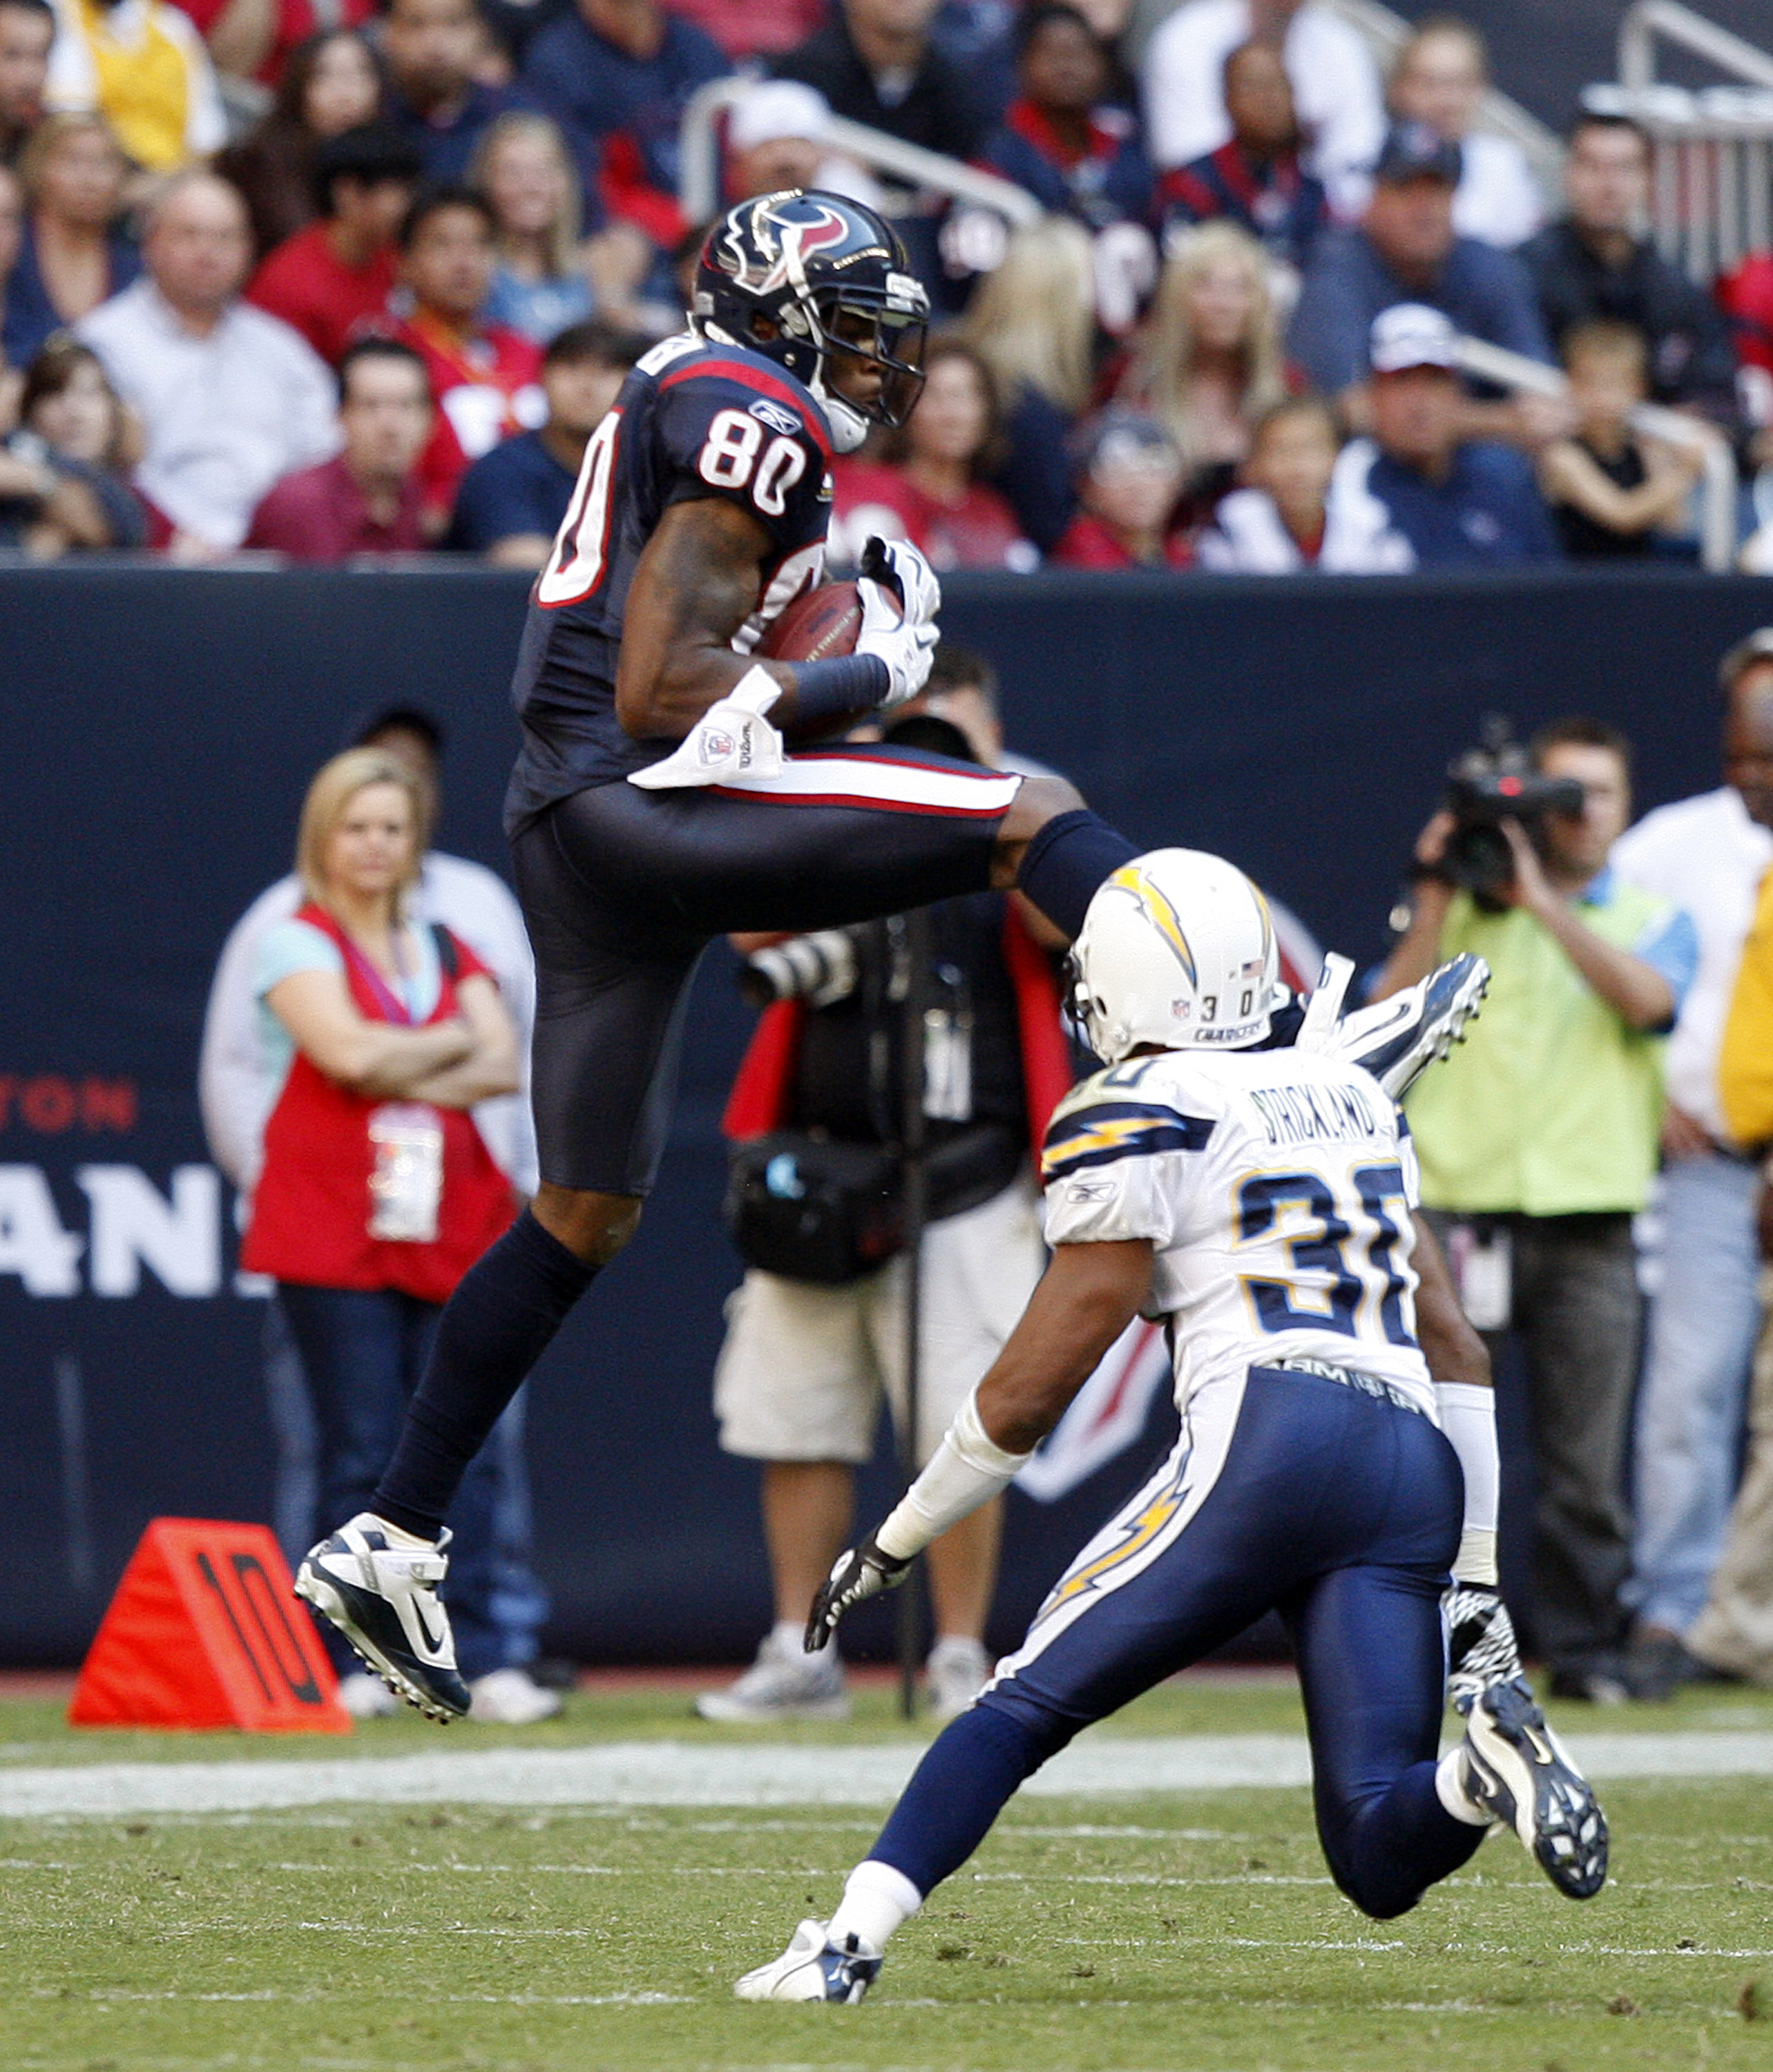 HOUSTON - NOVEMBER 07:  Wide receiver Andre Johnson #80 of the Houston Texans completes a pass in front of  cornerback Donald Strickland #30 of the San Diego Chargers at Reliant Stadium on November 7, 2010 in Houston, Texas.  (Photo by Bob Levey/Getty Ima